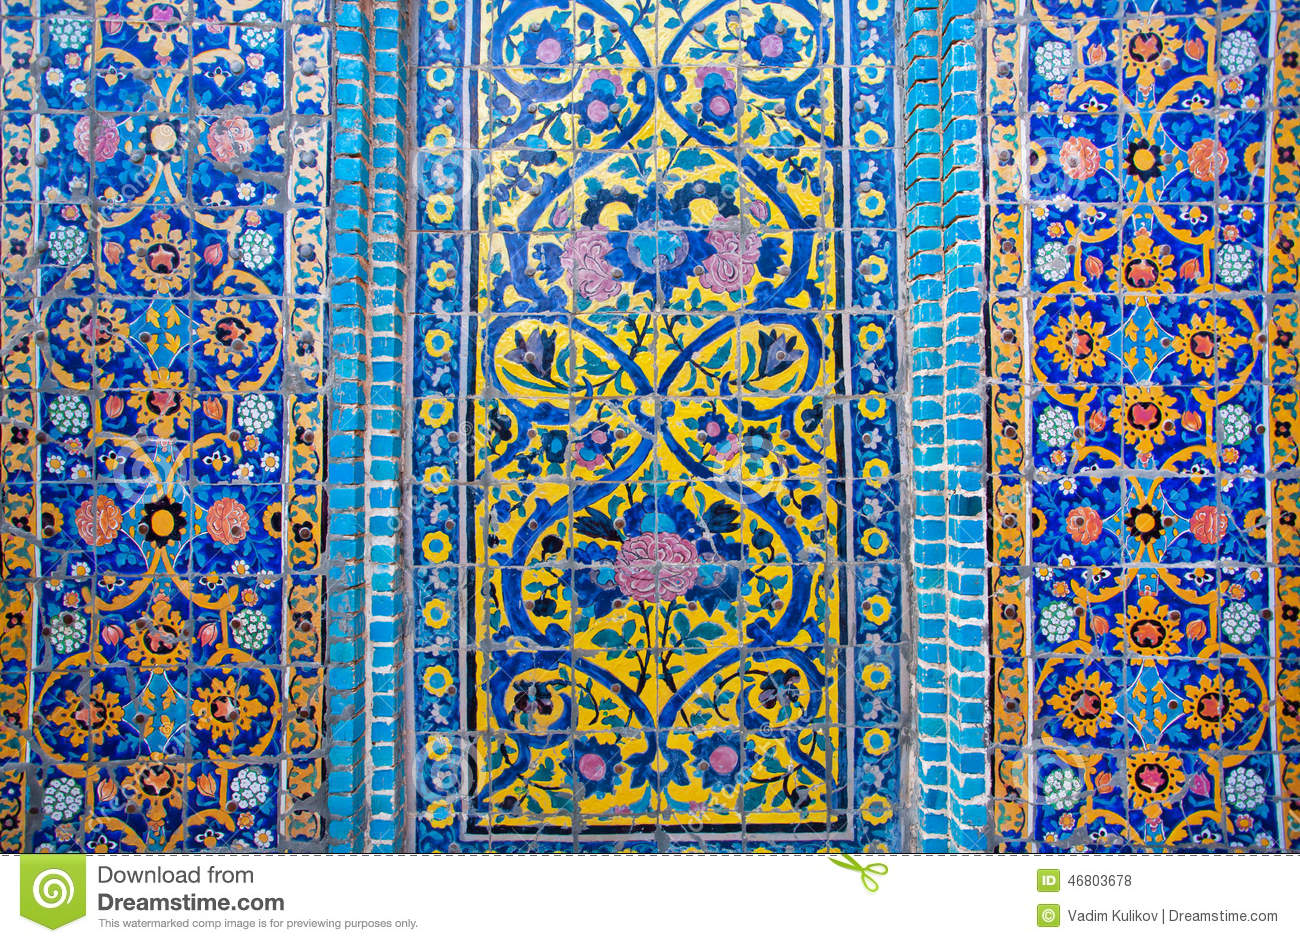 Patterns On A Crumbling Tile Of Beautiful Persian Palace